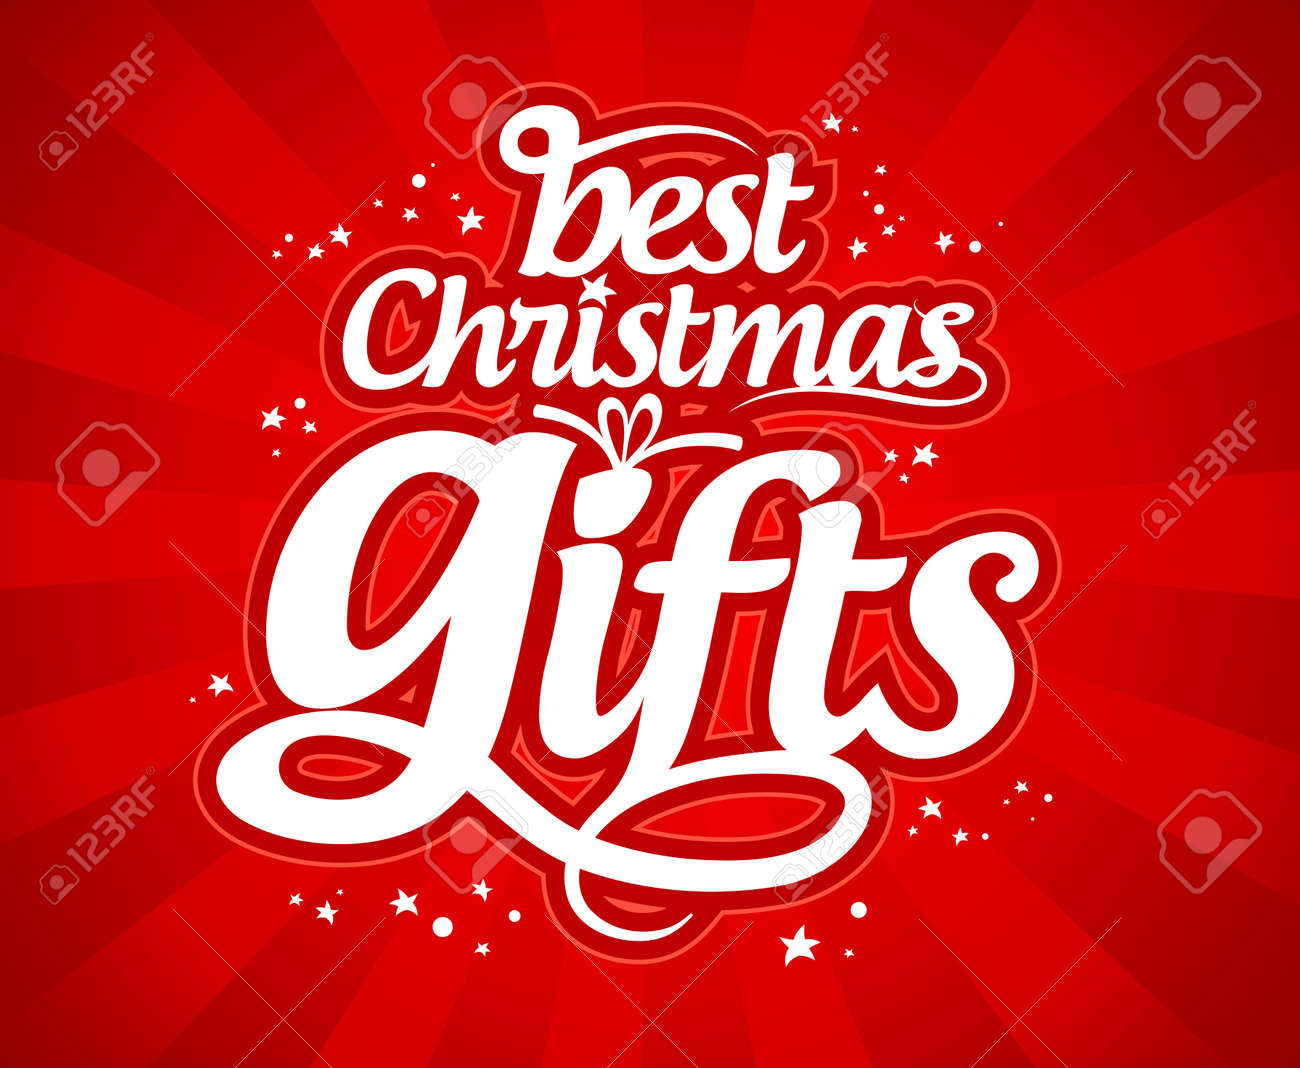 Best Christmas gifts design template. Stock Vector - 16101937